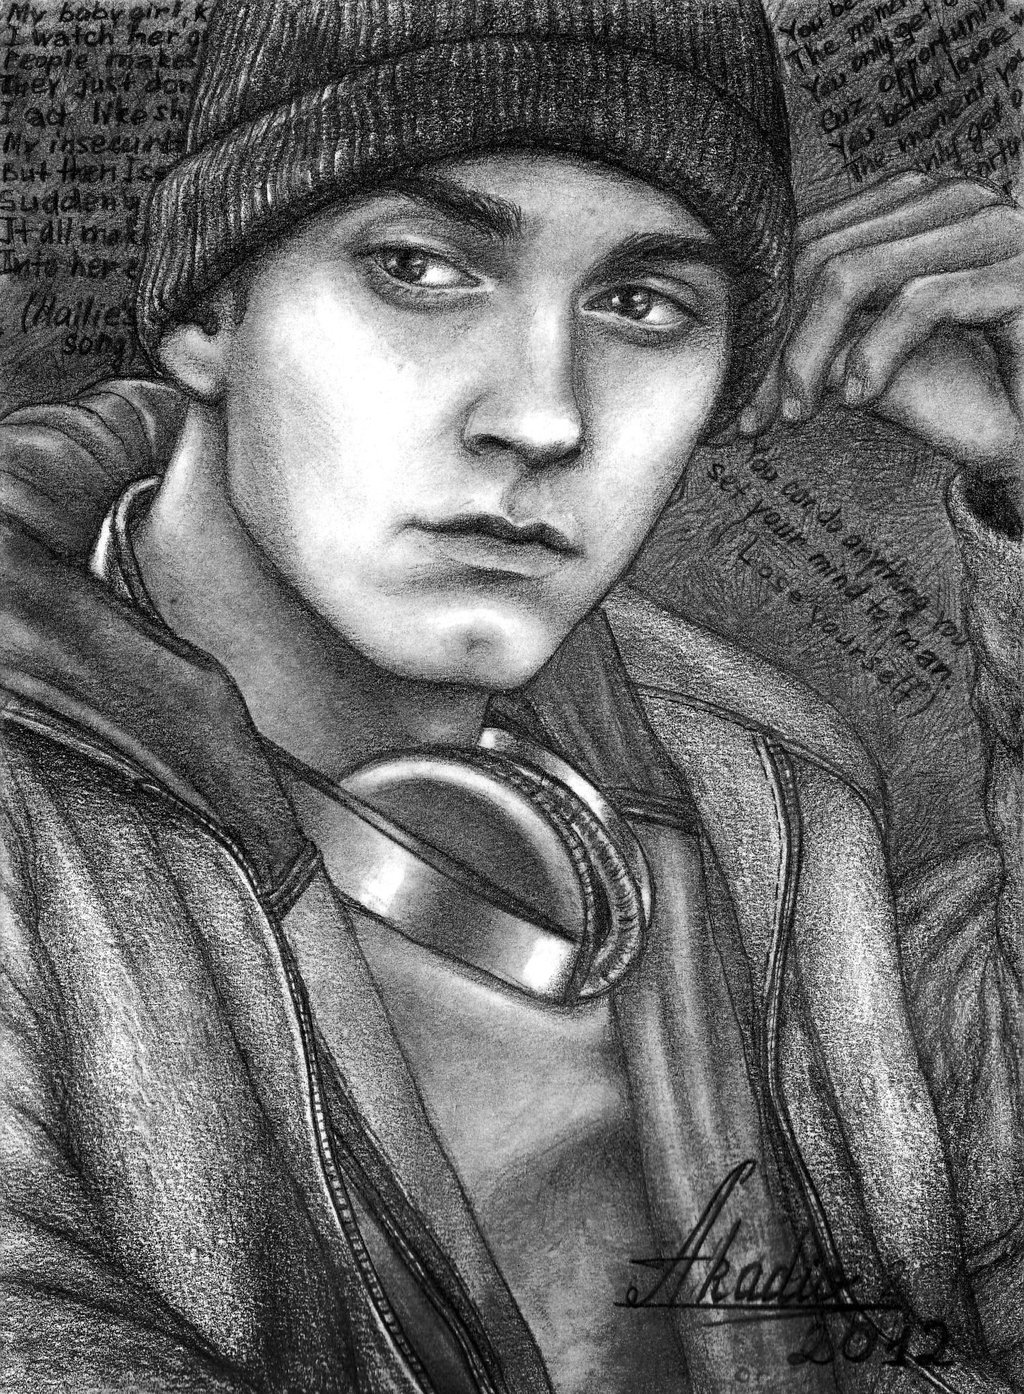 Eminem Fan Art - 5 of The Best